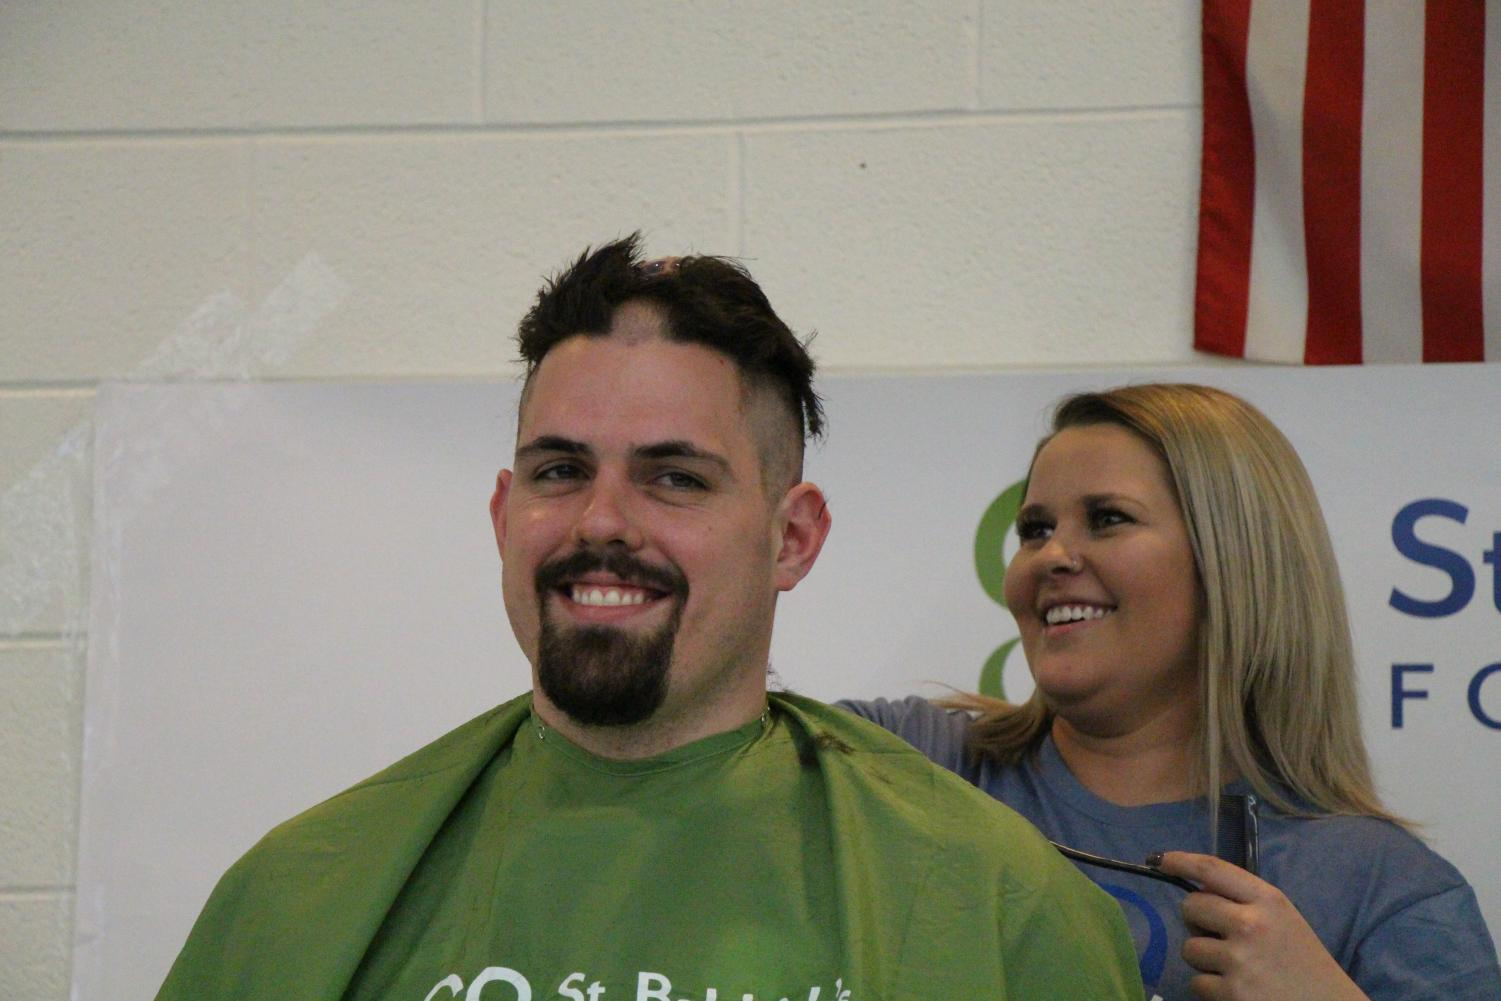 Jon Pereiro, teacher, was shaved down the center of his head, much to the amusement of the audience.